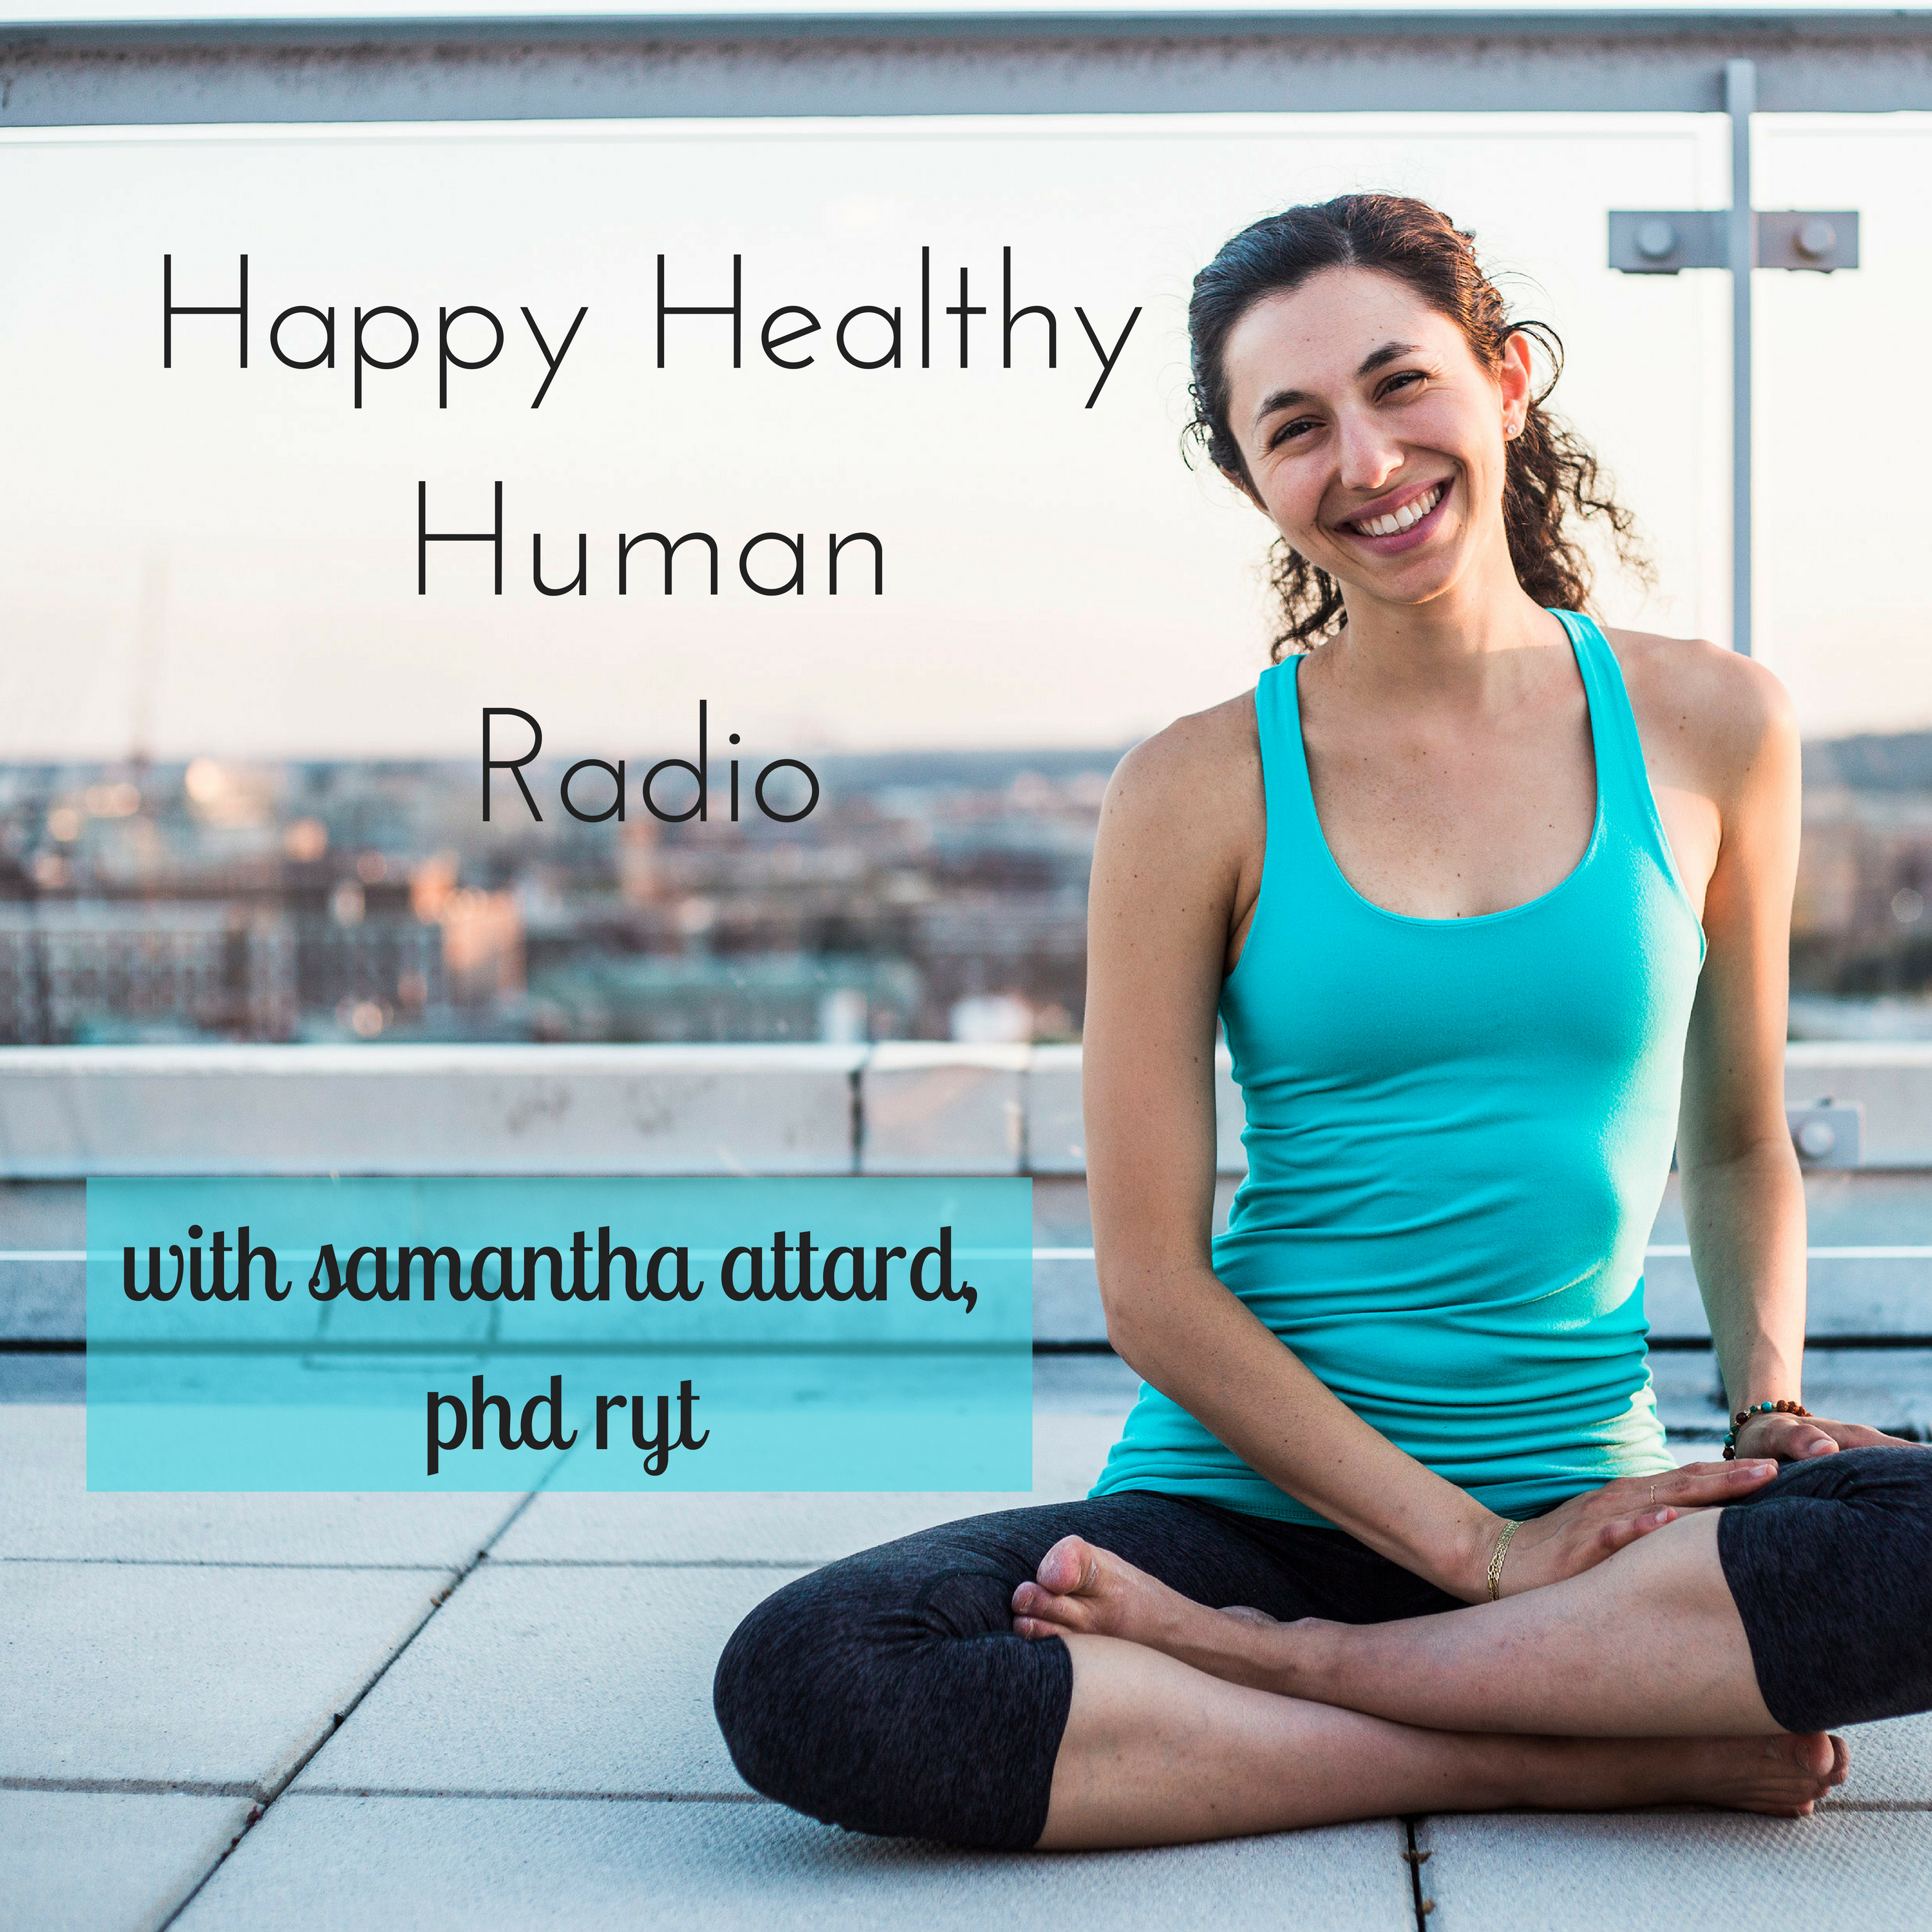 about happy healthy human radio